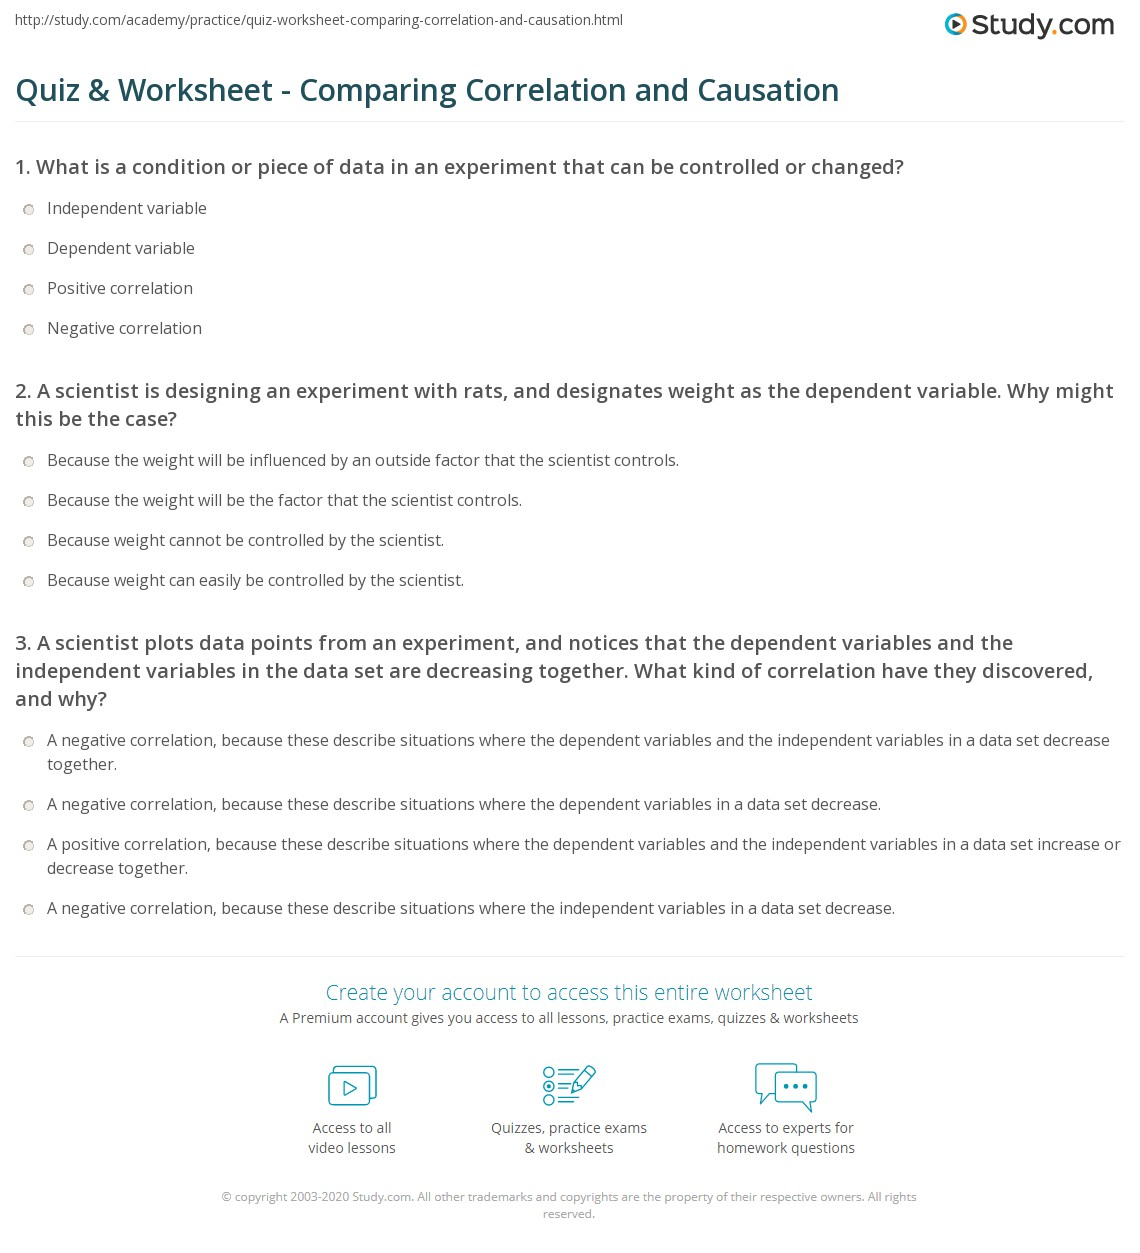 Aldiablosus  Remarkable Quiz Amp Worksheet  Comparing Correlation And Causation  Studycom With Licious Print Correlation Vs Causation Differences Amp Definition Worksheet With Enchanting Blank Budget Worksheet Also Inflected Endings Worksheet In Addition Money Math Worksheet And Division Worksheets Without Remainders As Well As Hispanic Heritage Month Worksheets Additionally Math Worksheets Fourth Grade From Studycom With Aldiablosus  Licious Quiz Amp Worksheet  Comparing Correlation And Causation  Studycom With Enchanting Print Correlation Vs Causation Differences Amp Definition Worksheet And Remarkable Blank Budget Worksheet Also Inflected Endings Worksheet In Addition Money Math Worksheet From Studycom